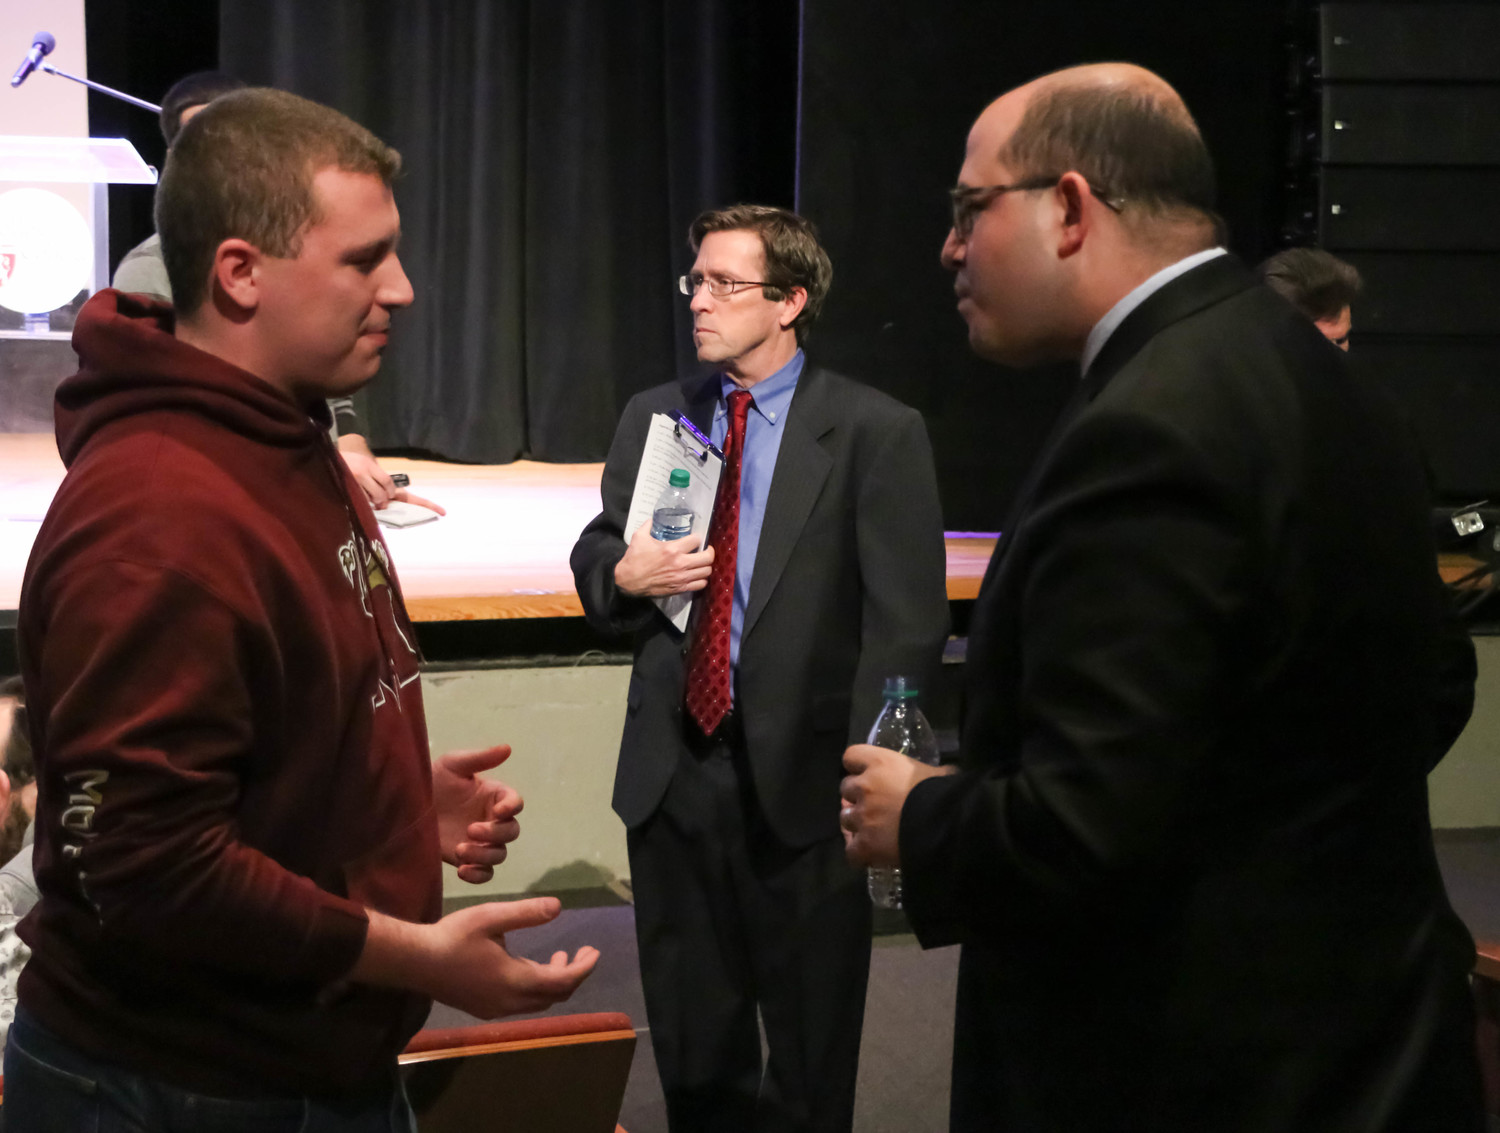 Lou Mazza, left, a freshman at Molloy College, spoke with Stelter after calling him out for having a liberal agenda.